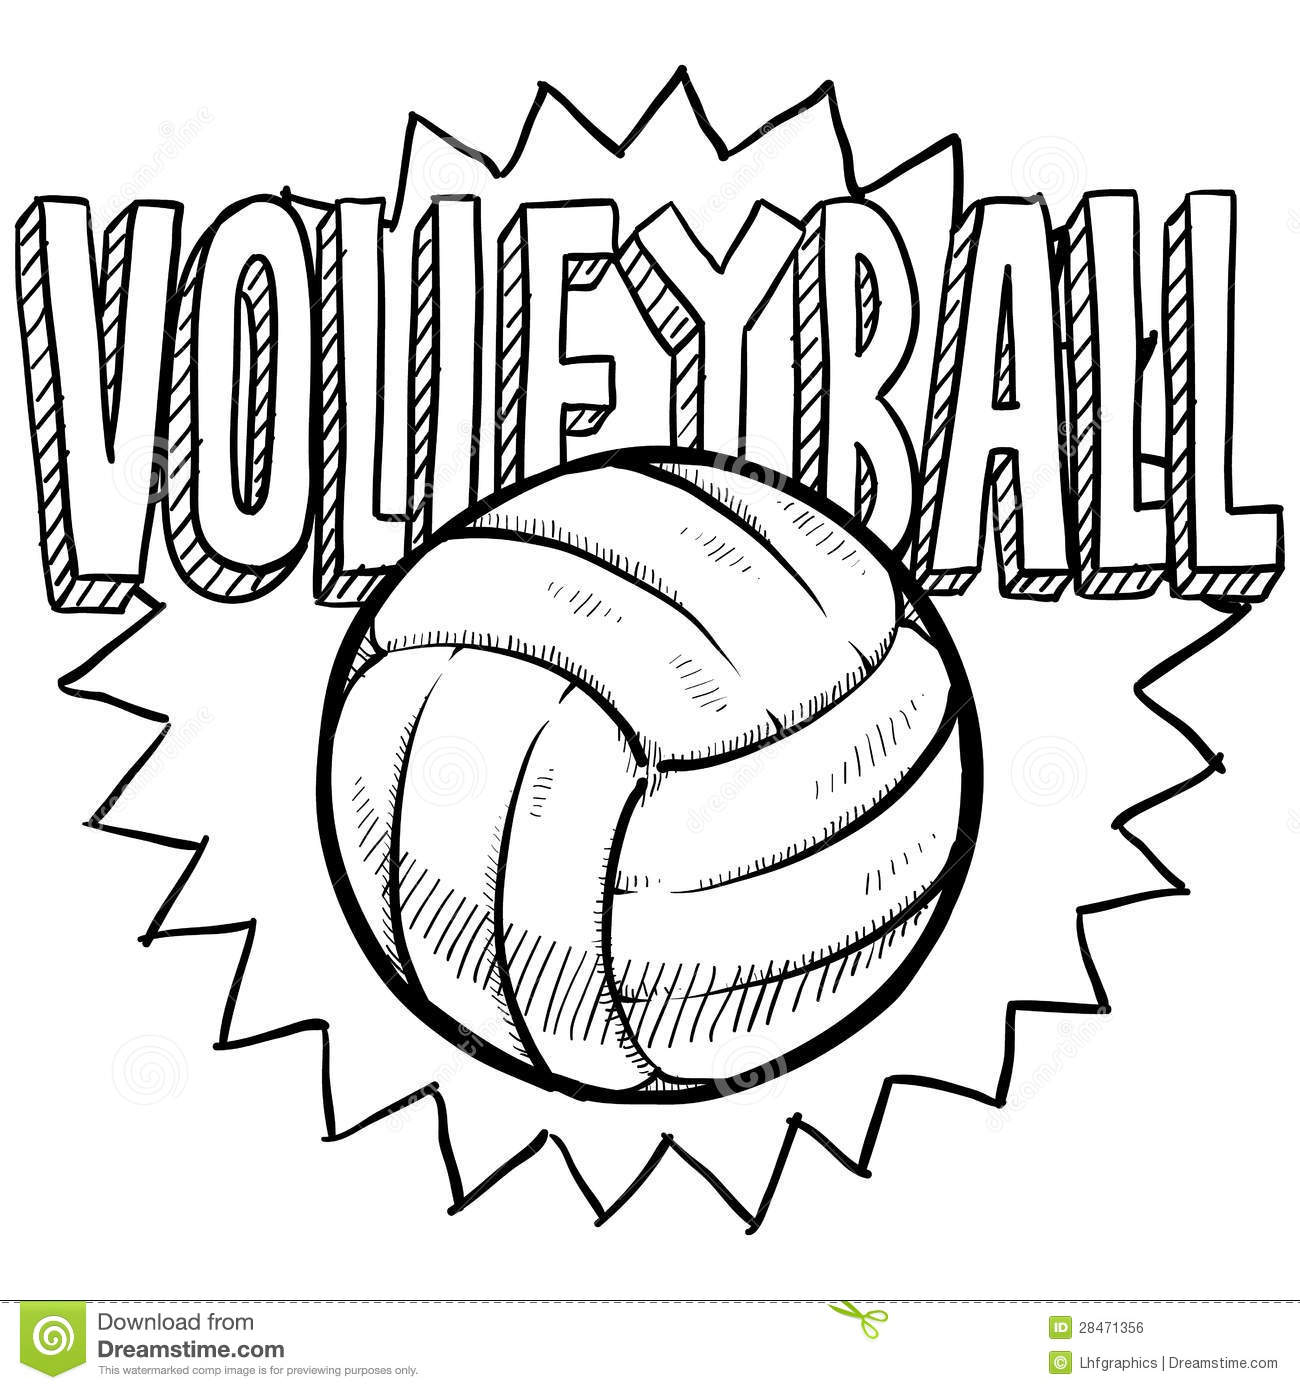 Volleyball coloring pages for girls